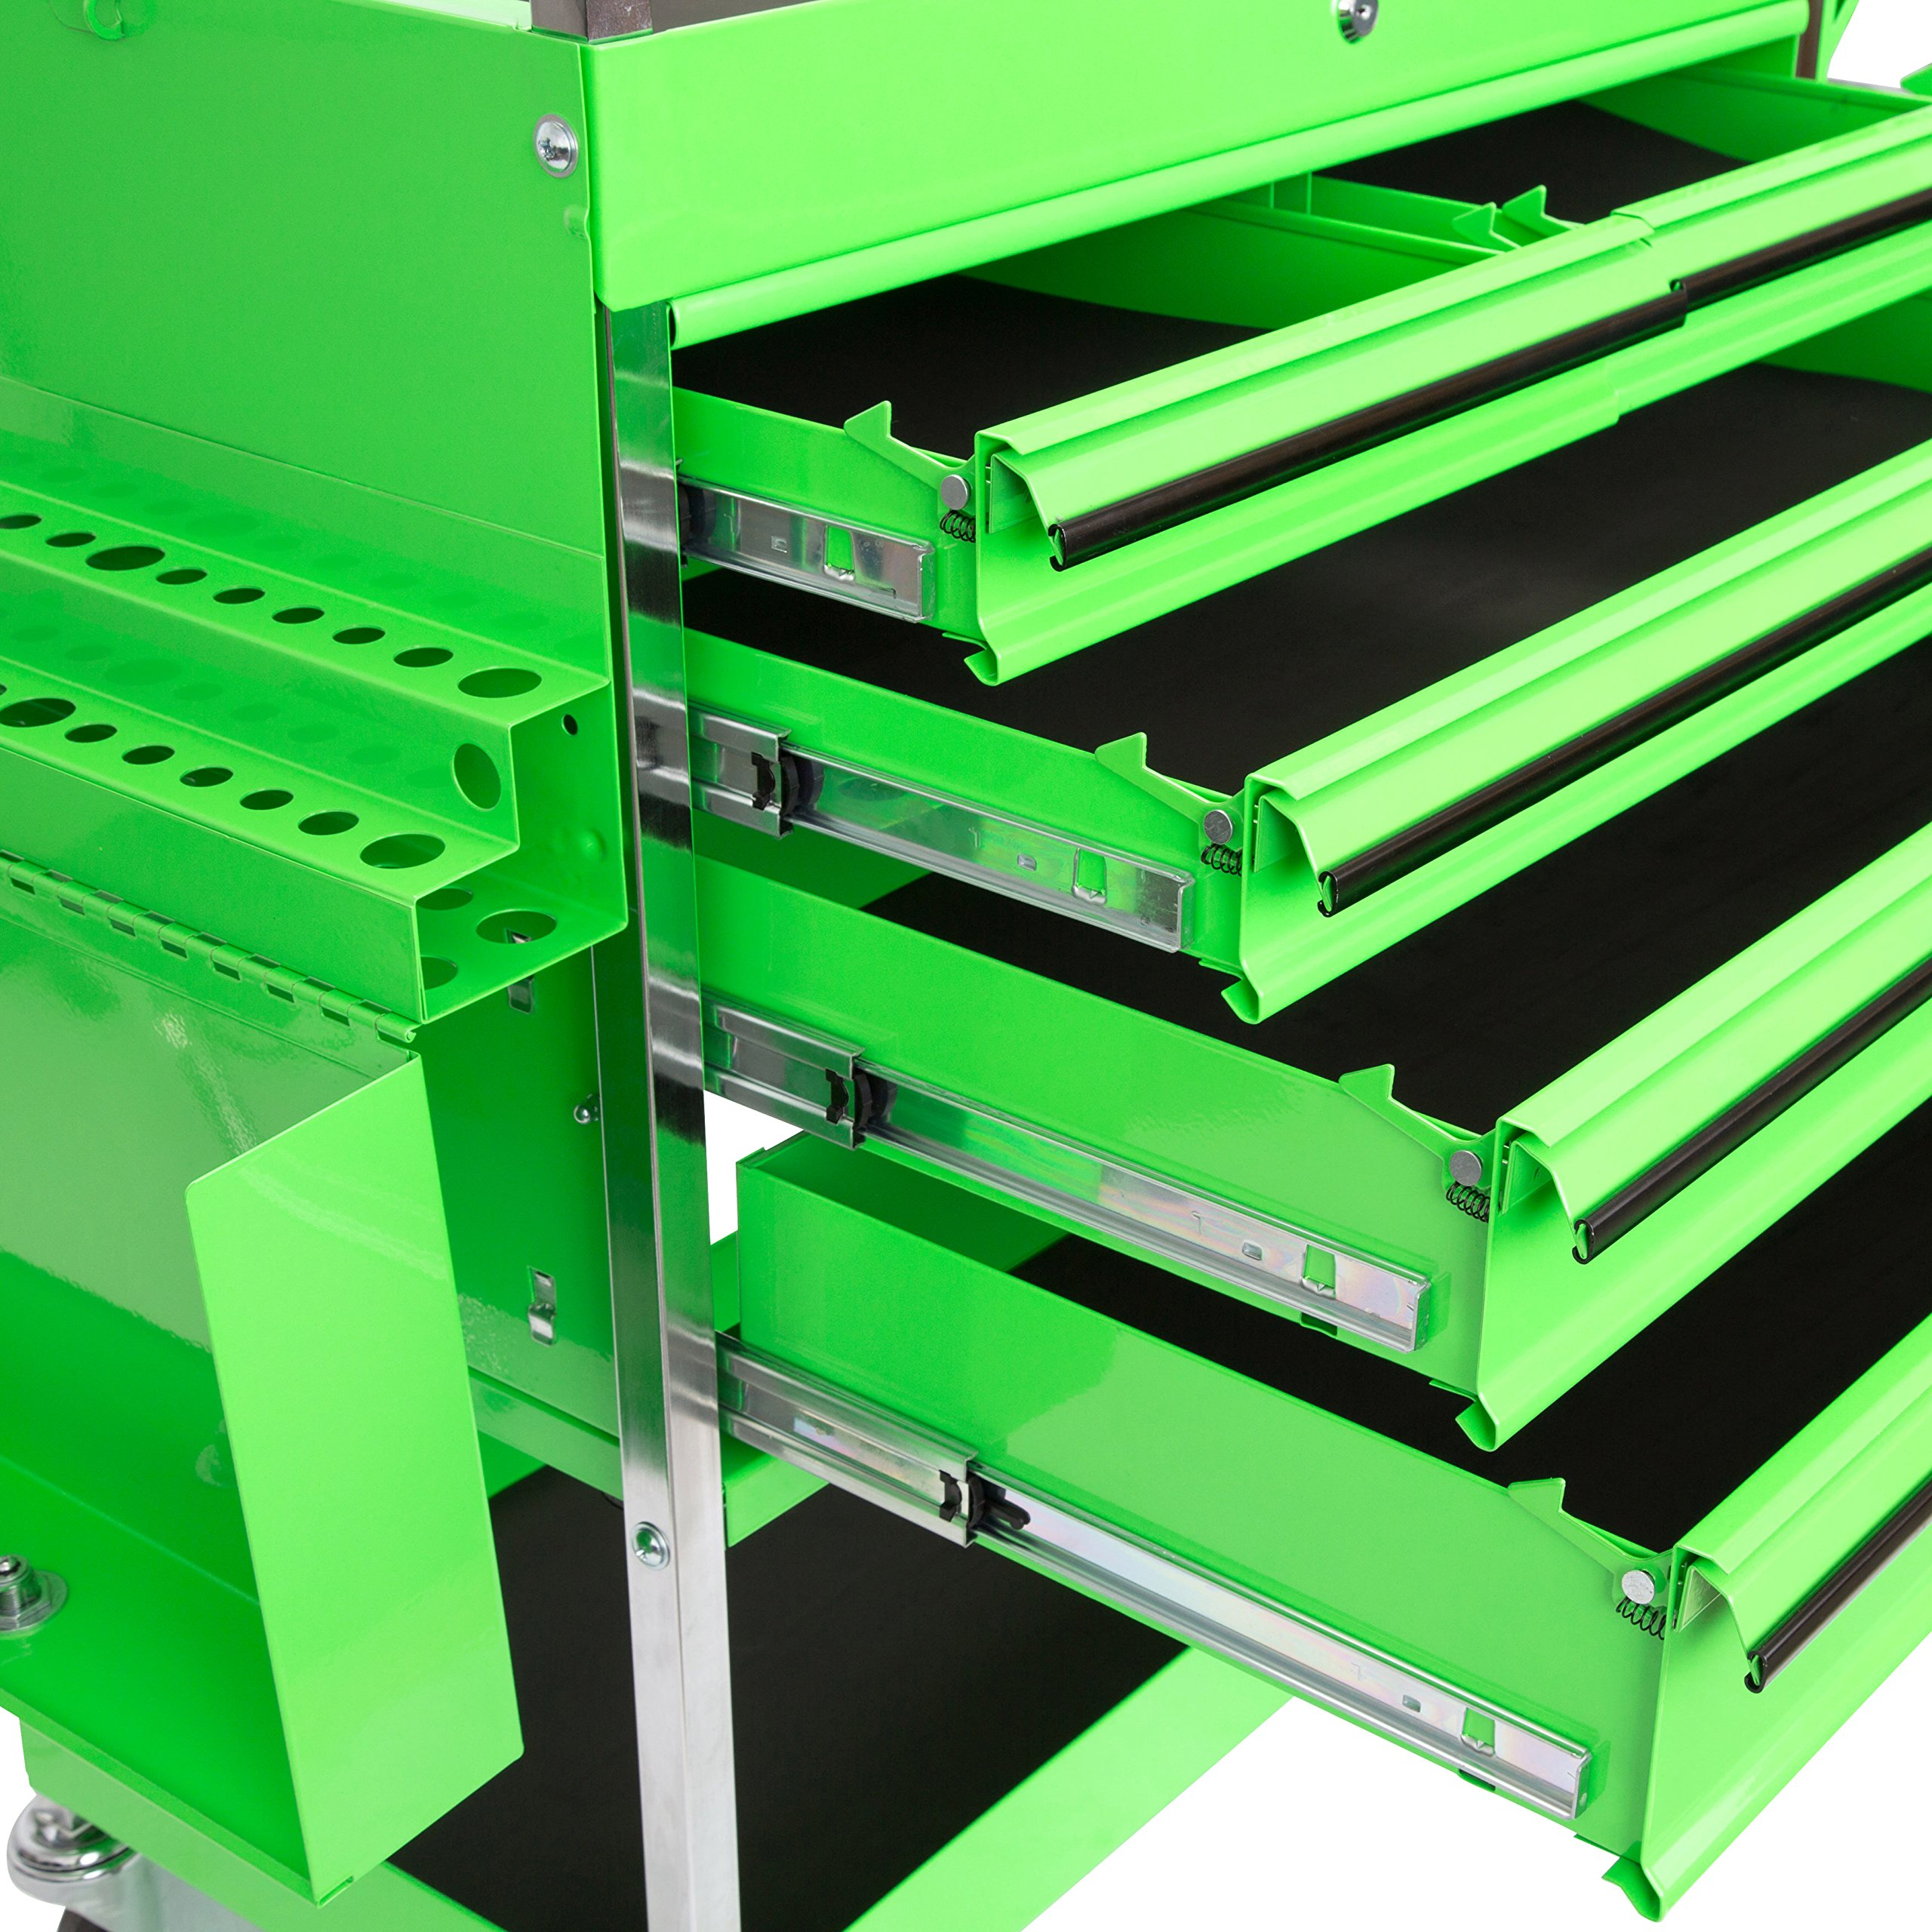 Professional Service Cart - 5 Drawer and 1 Tray (Green) by OEMTOOLS (Image #5)